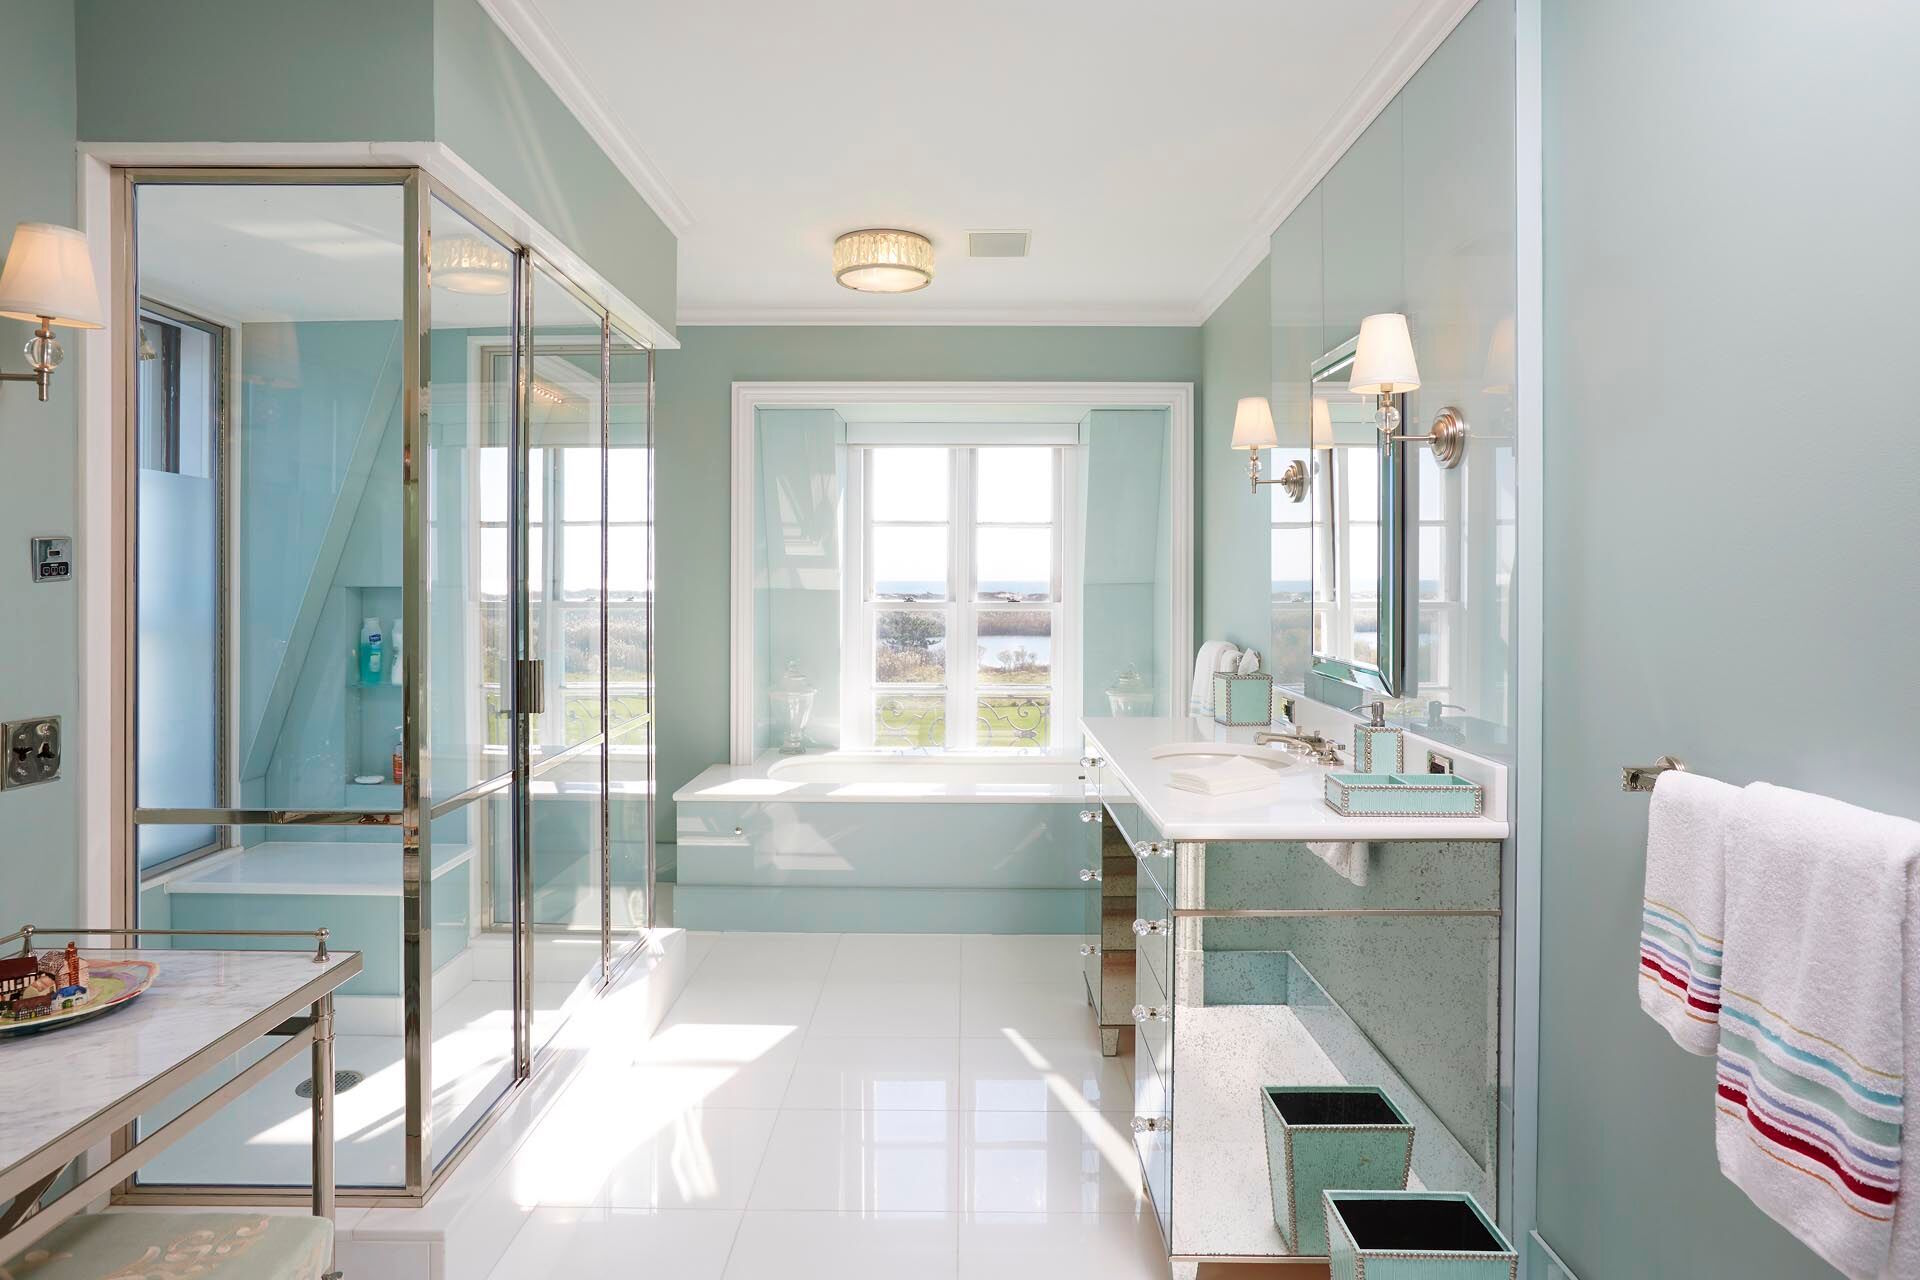 A bathroom at an estate in the Hamptons